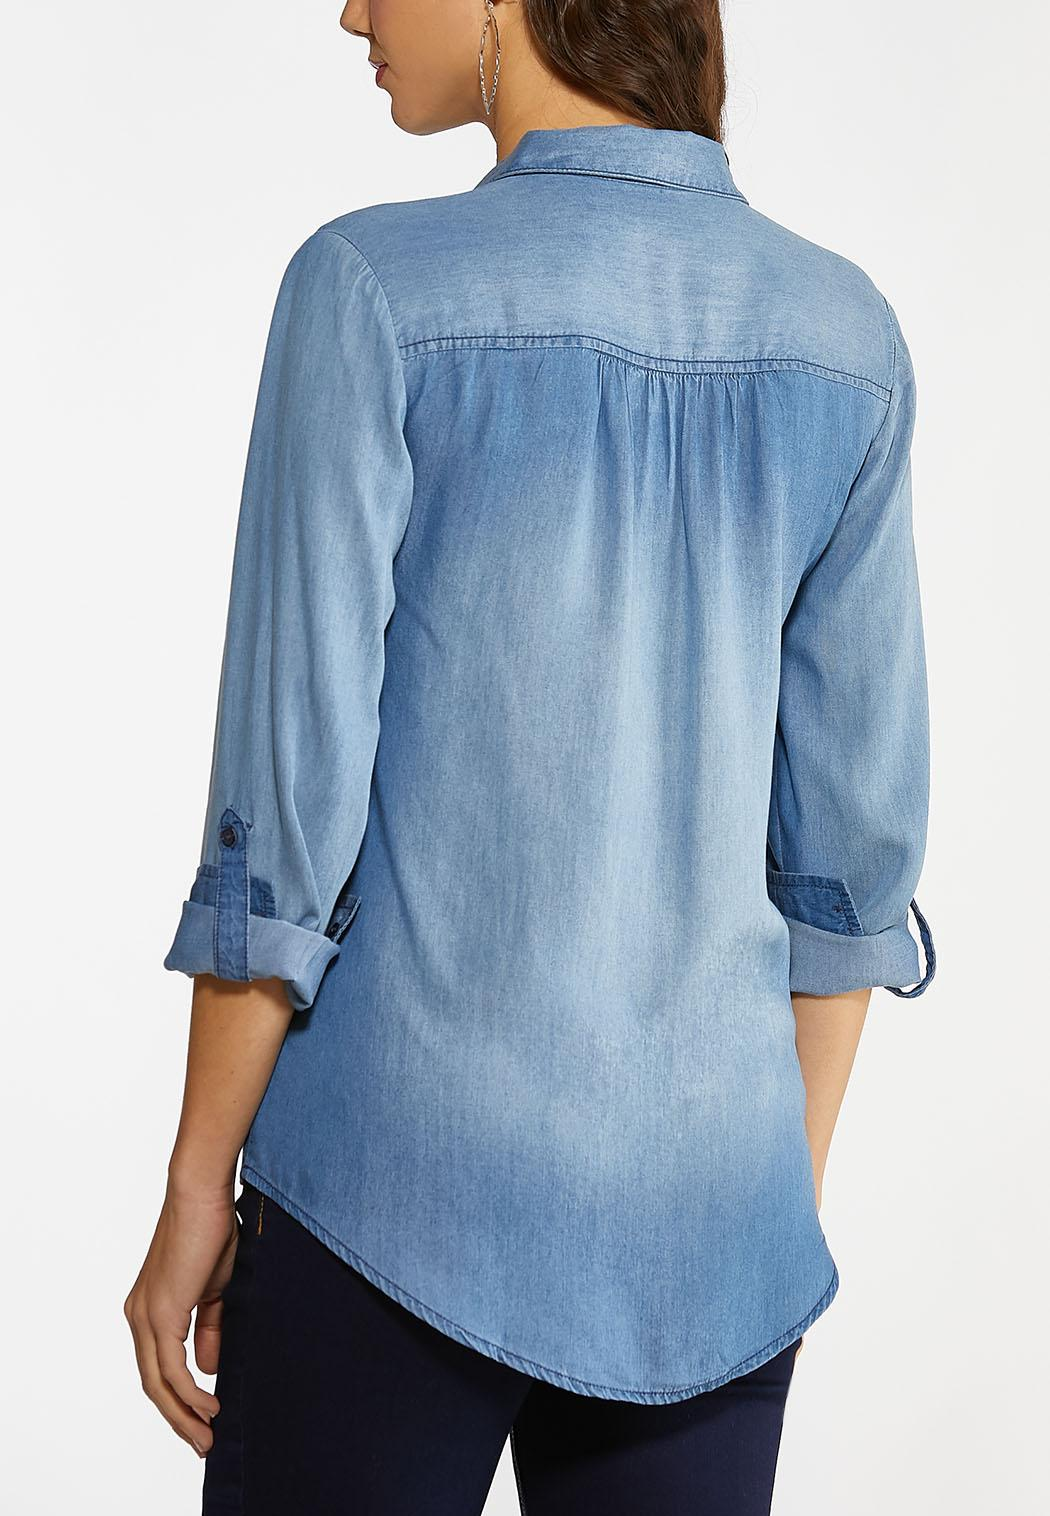 Plus Size Lace Up Chambray Top (Item #44094017)